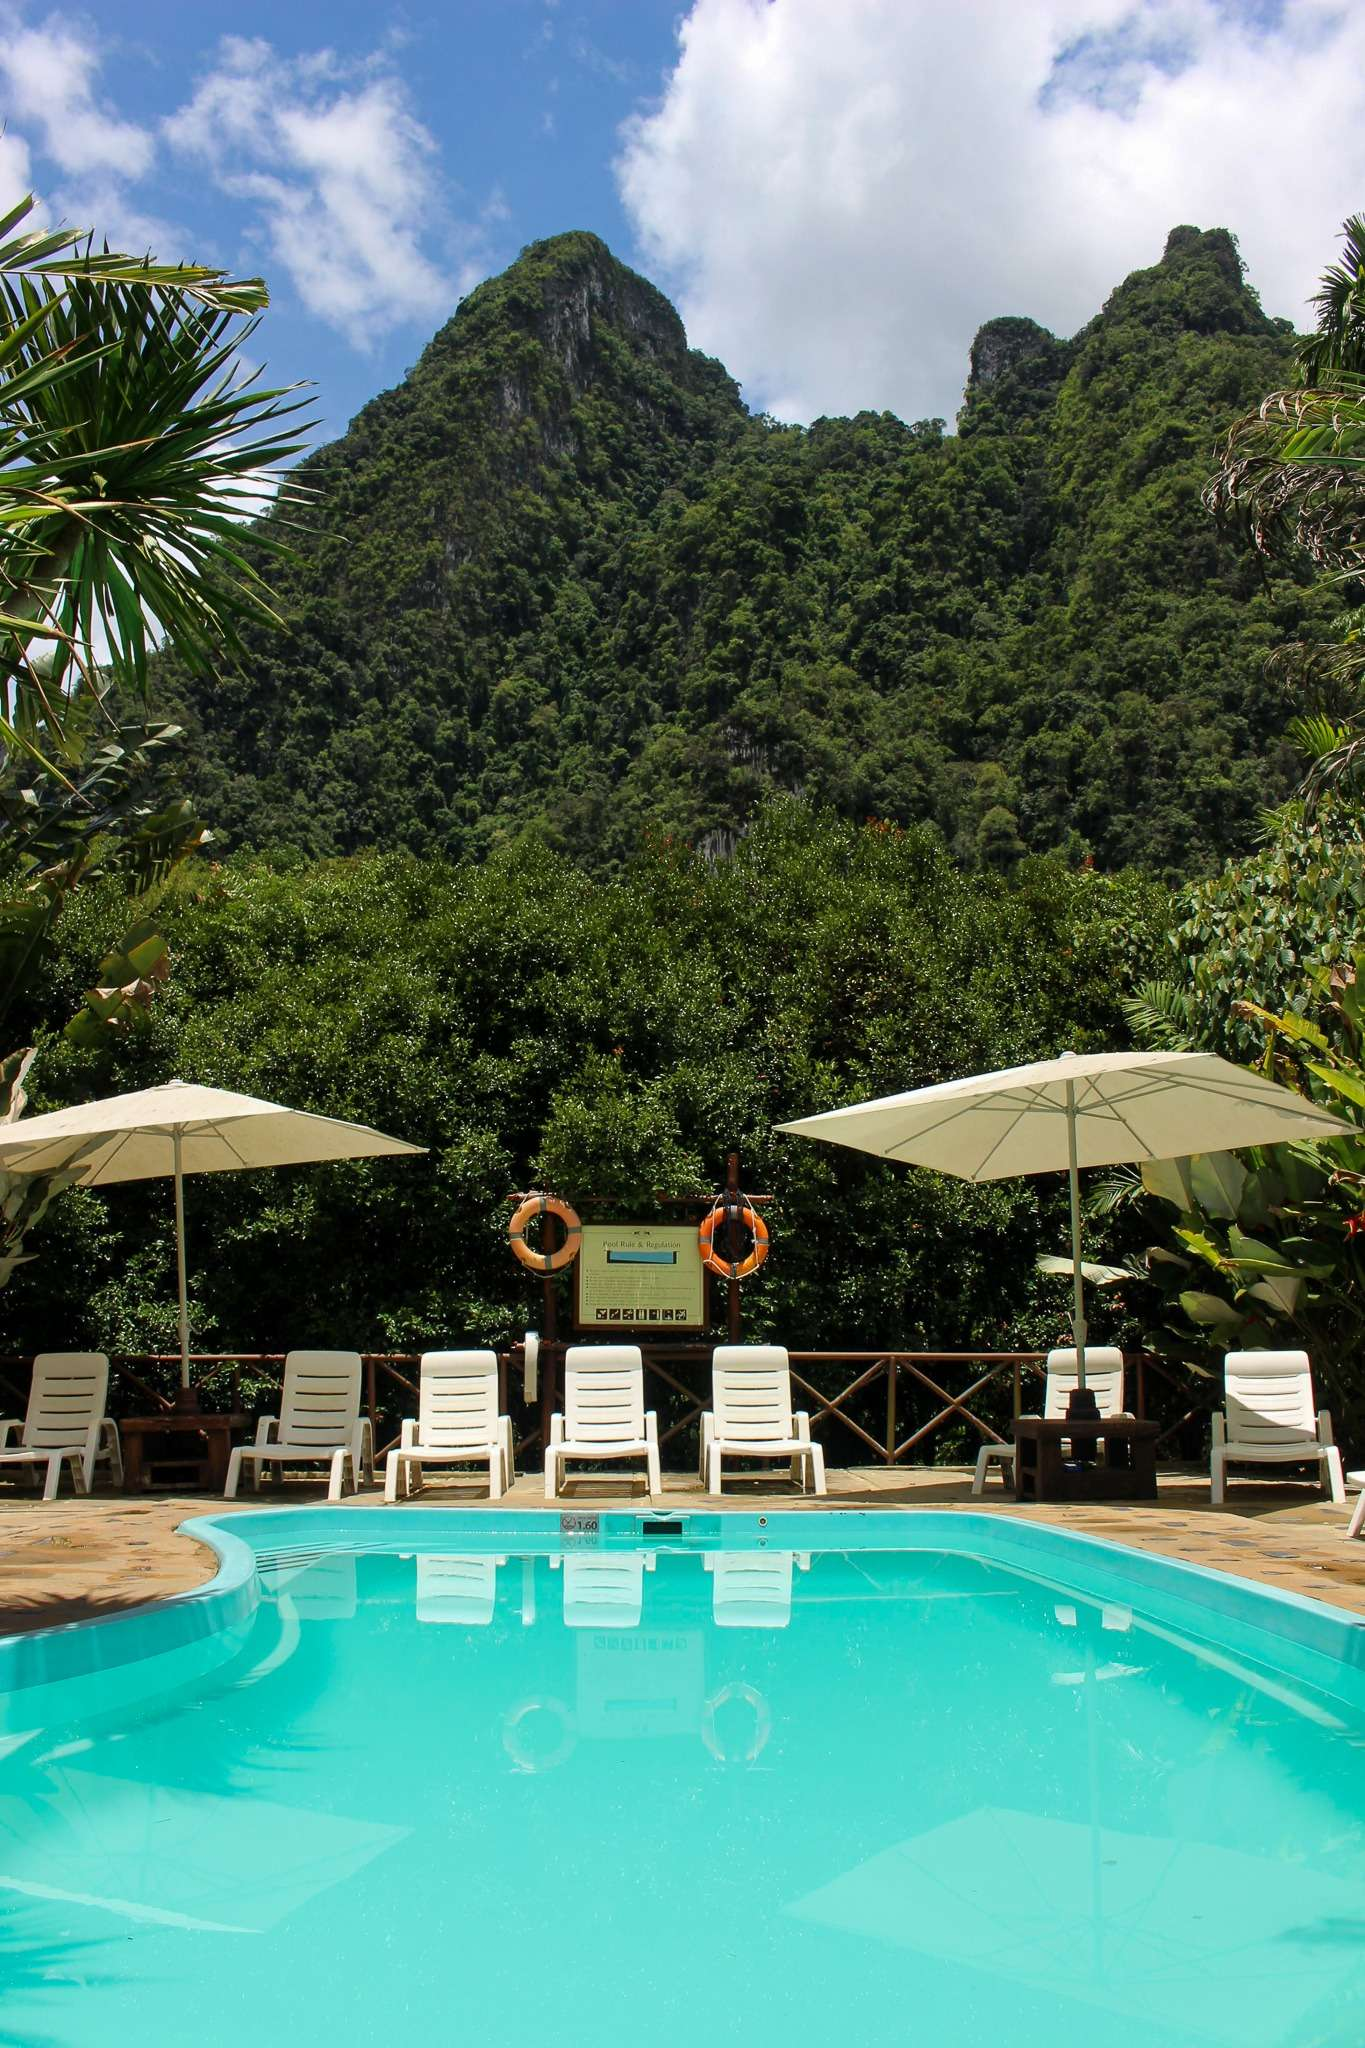 swimming pool surrounded by trees at Elephant Hills rainforest camp